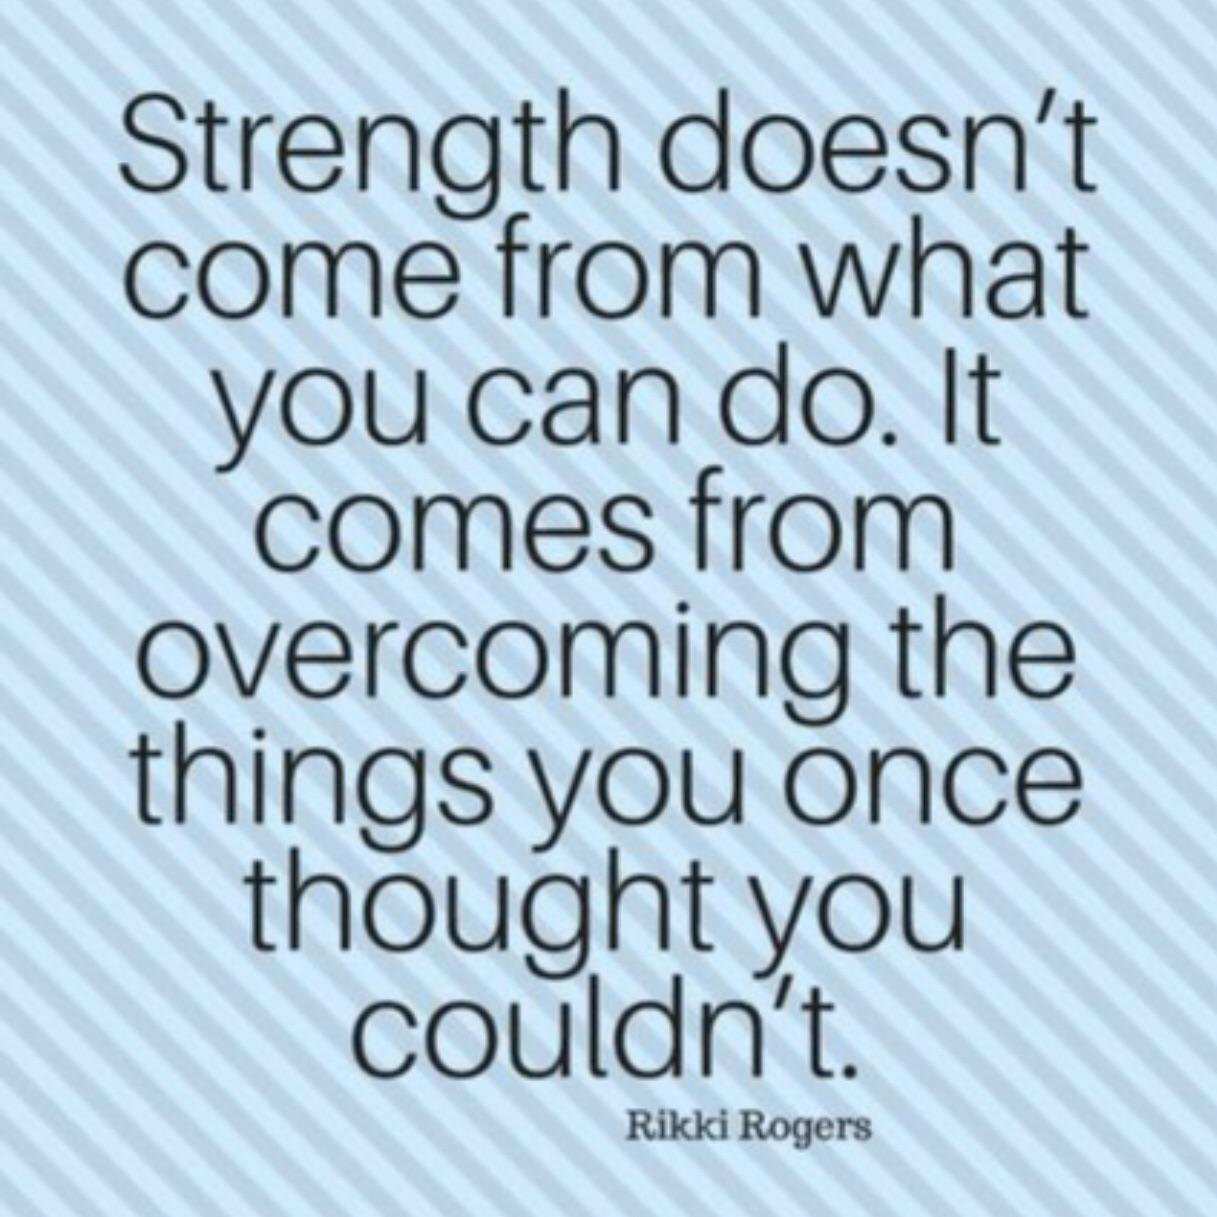 [Image] Strength doesn't come from what you can do.